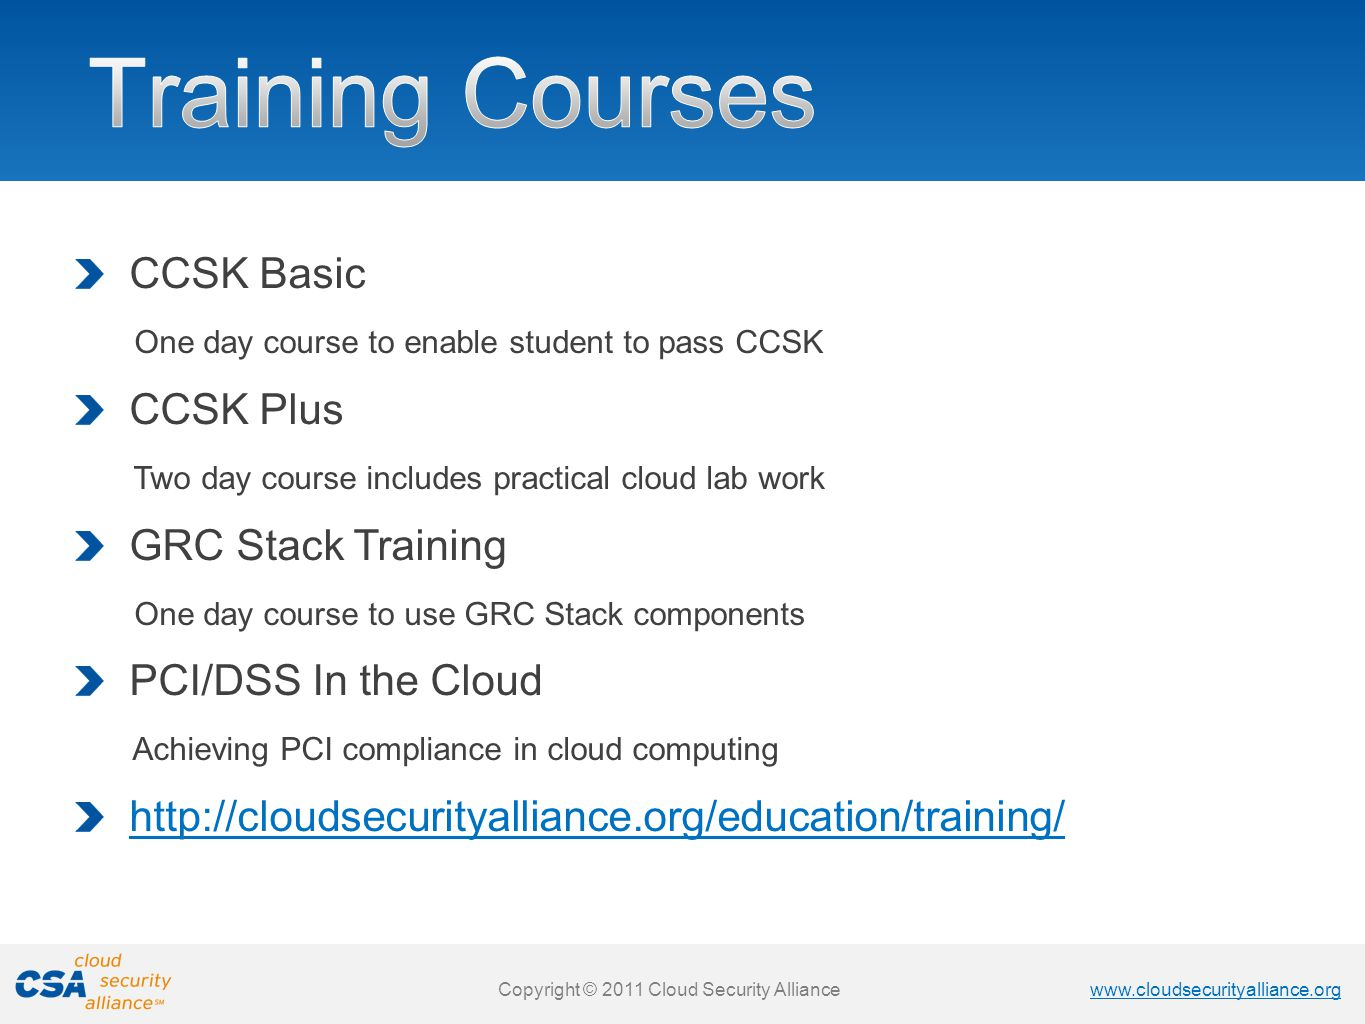 www.cloudsecurityalliance.org Copyright © 2011 Cloud Security Alliance www.cloudsecurityalliance.org Copyright © 2011 Cloud Security Alliance CCSK Basic One day course to enable student to pass CCSK CCSK Plus Two day course includes practical cloud lab work GRC Stack Training One day course to use GRC Stack components PCI/DSS In the Cloud Achieving PCI compliance in cloud computing http://cloudsecurityalliance.org/education/training/